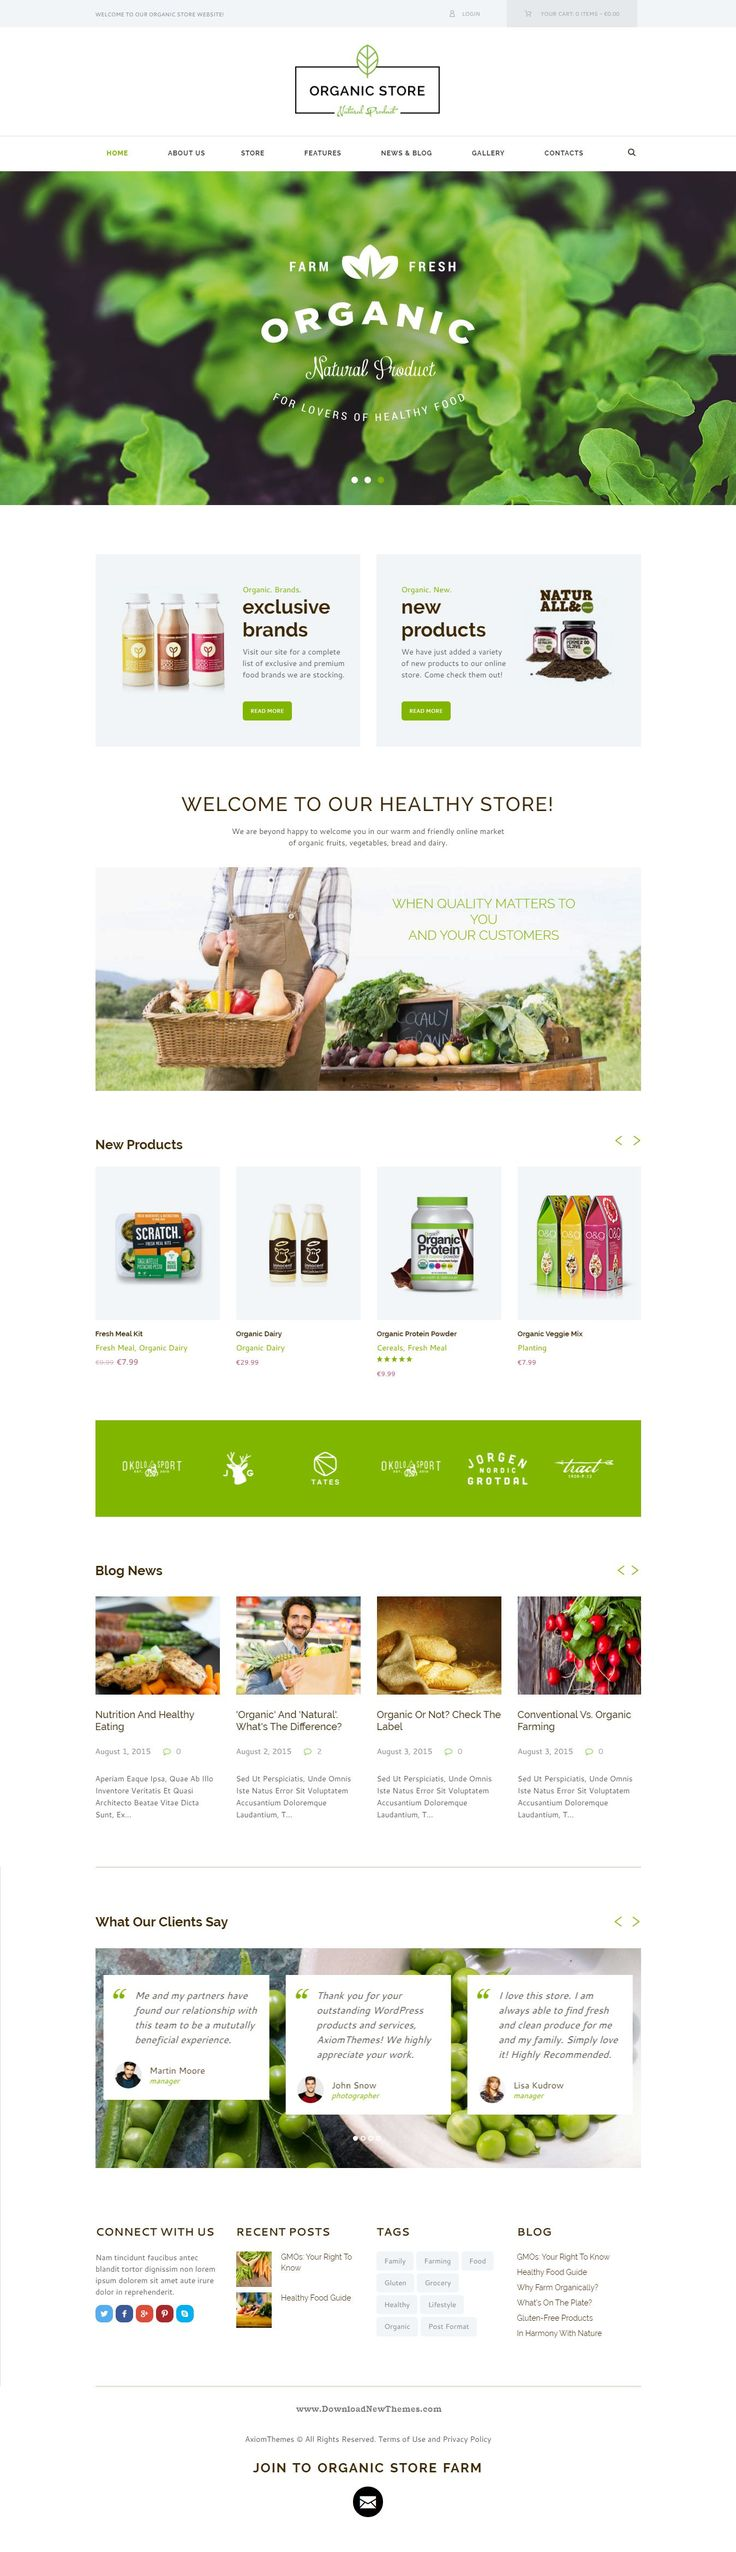 Organic store responsive WordPress Theme is a colorful design perfectly suitable for #agricultural business, agrotourism, healthy food blog, organic food shop, #organic farm, bakery – anything you want! #website